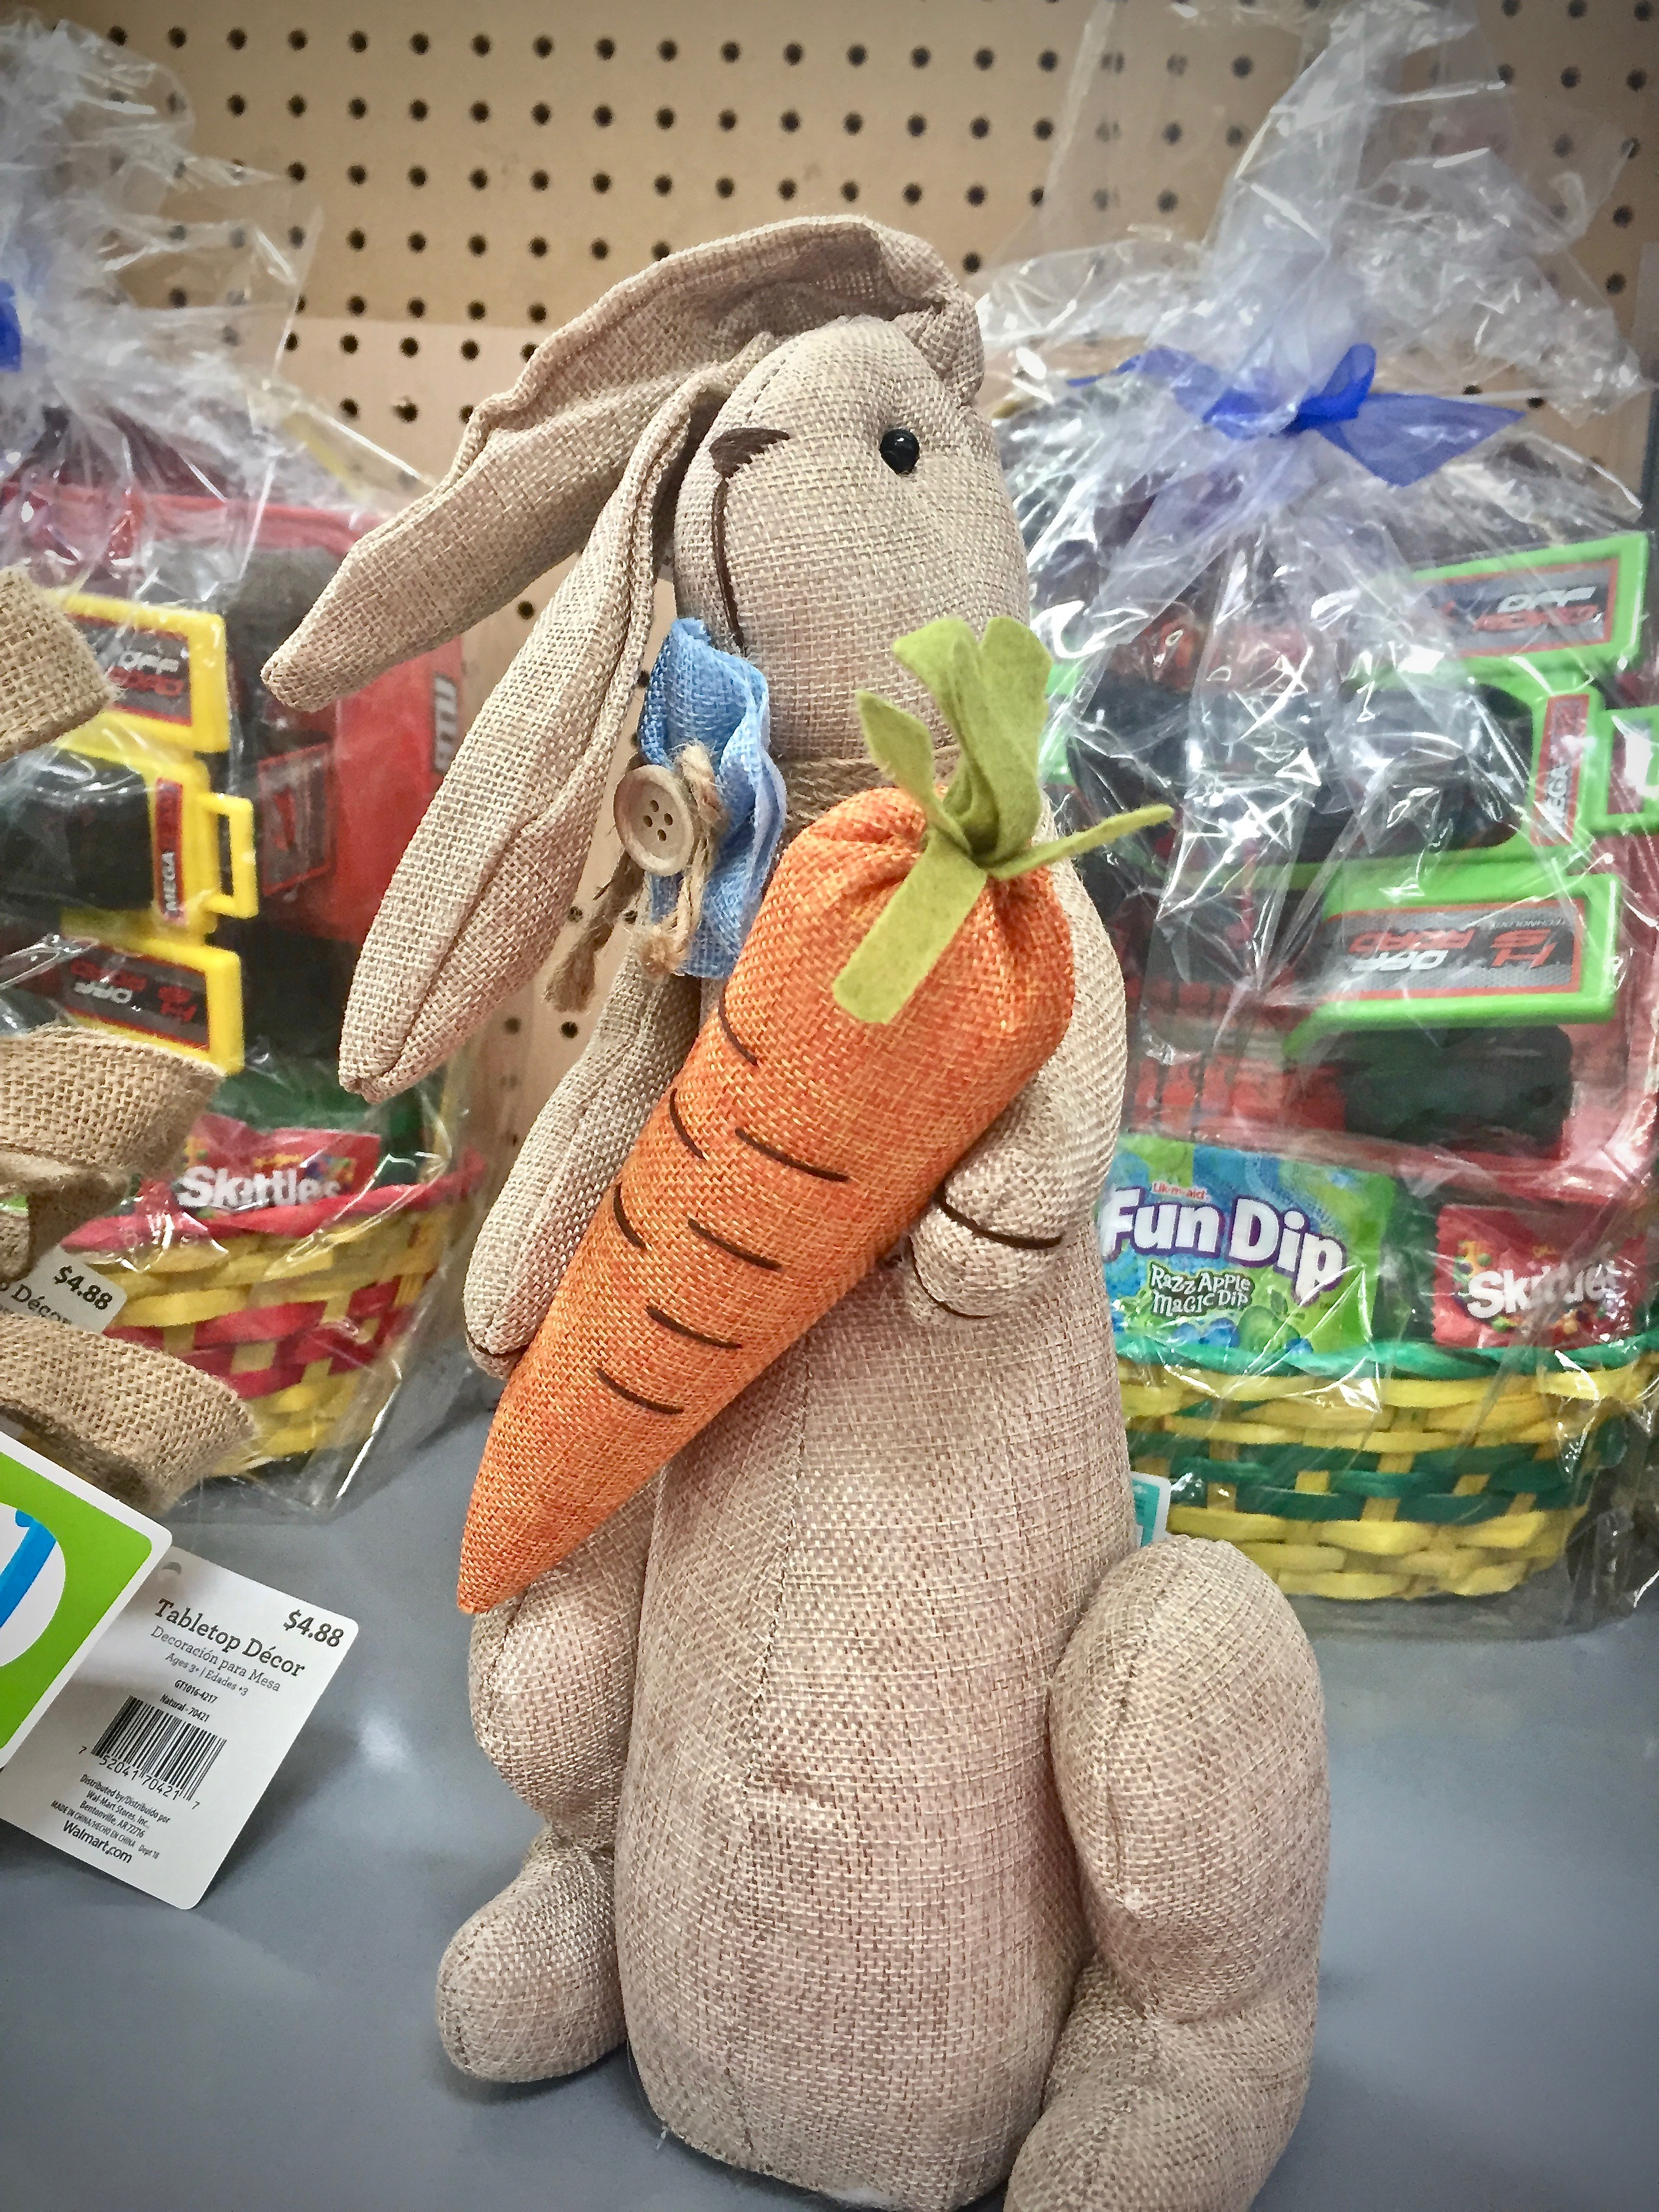 Easter decor on clearance after the holiday can be used for baby room decor - 10 Things To Do With After-Easter Clearance Items